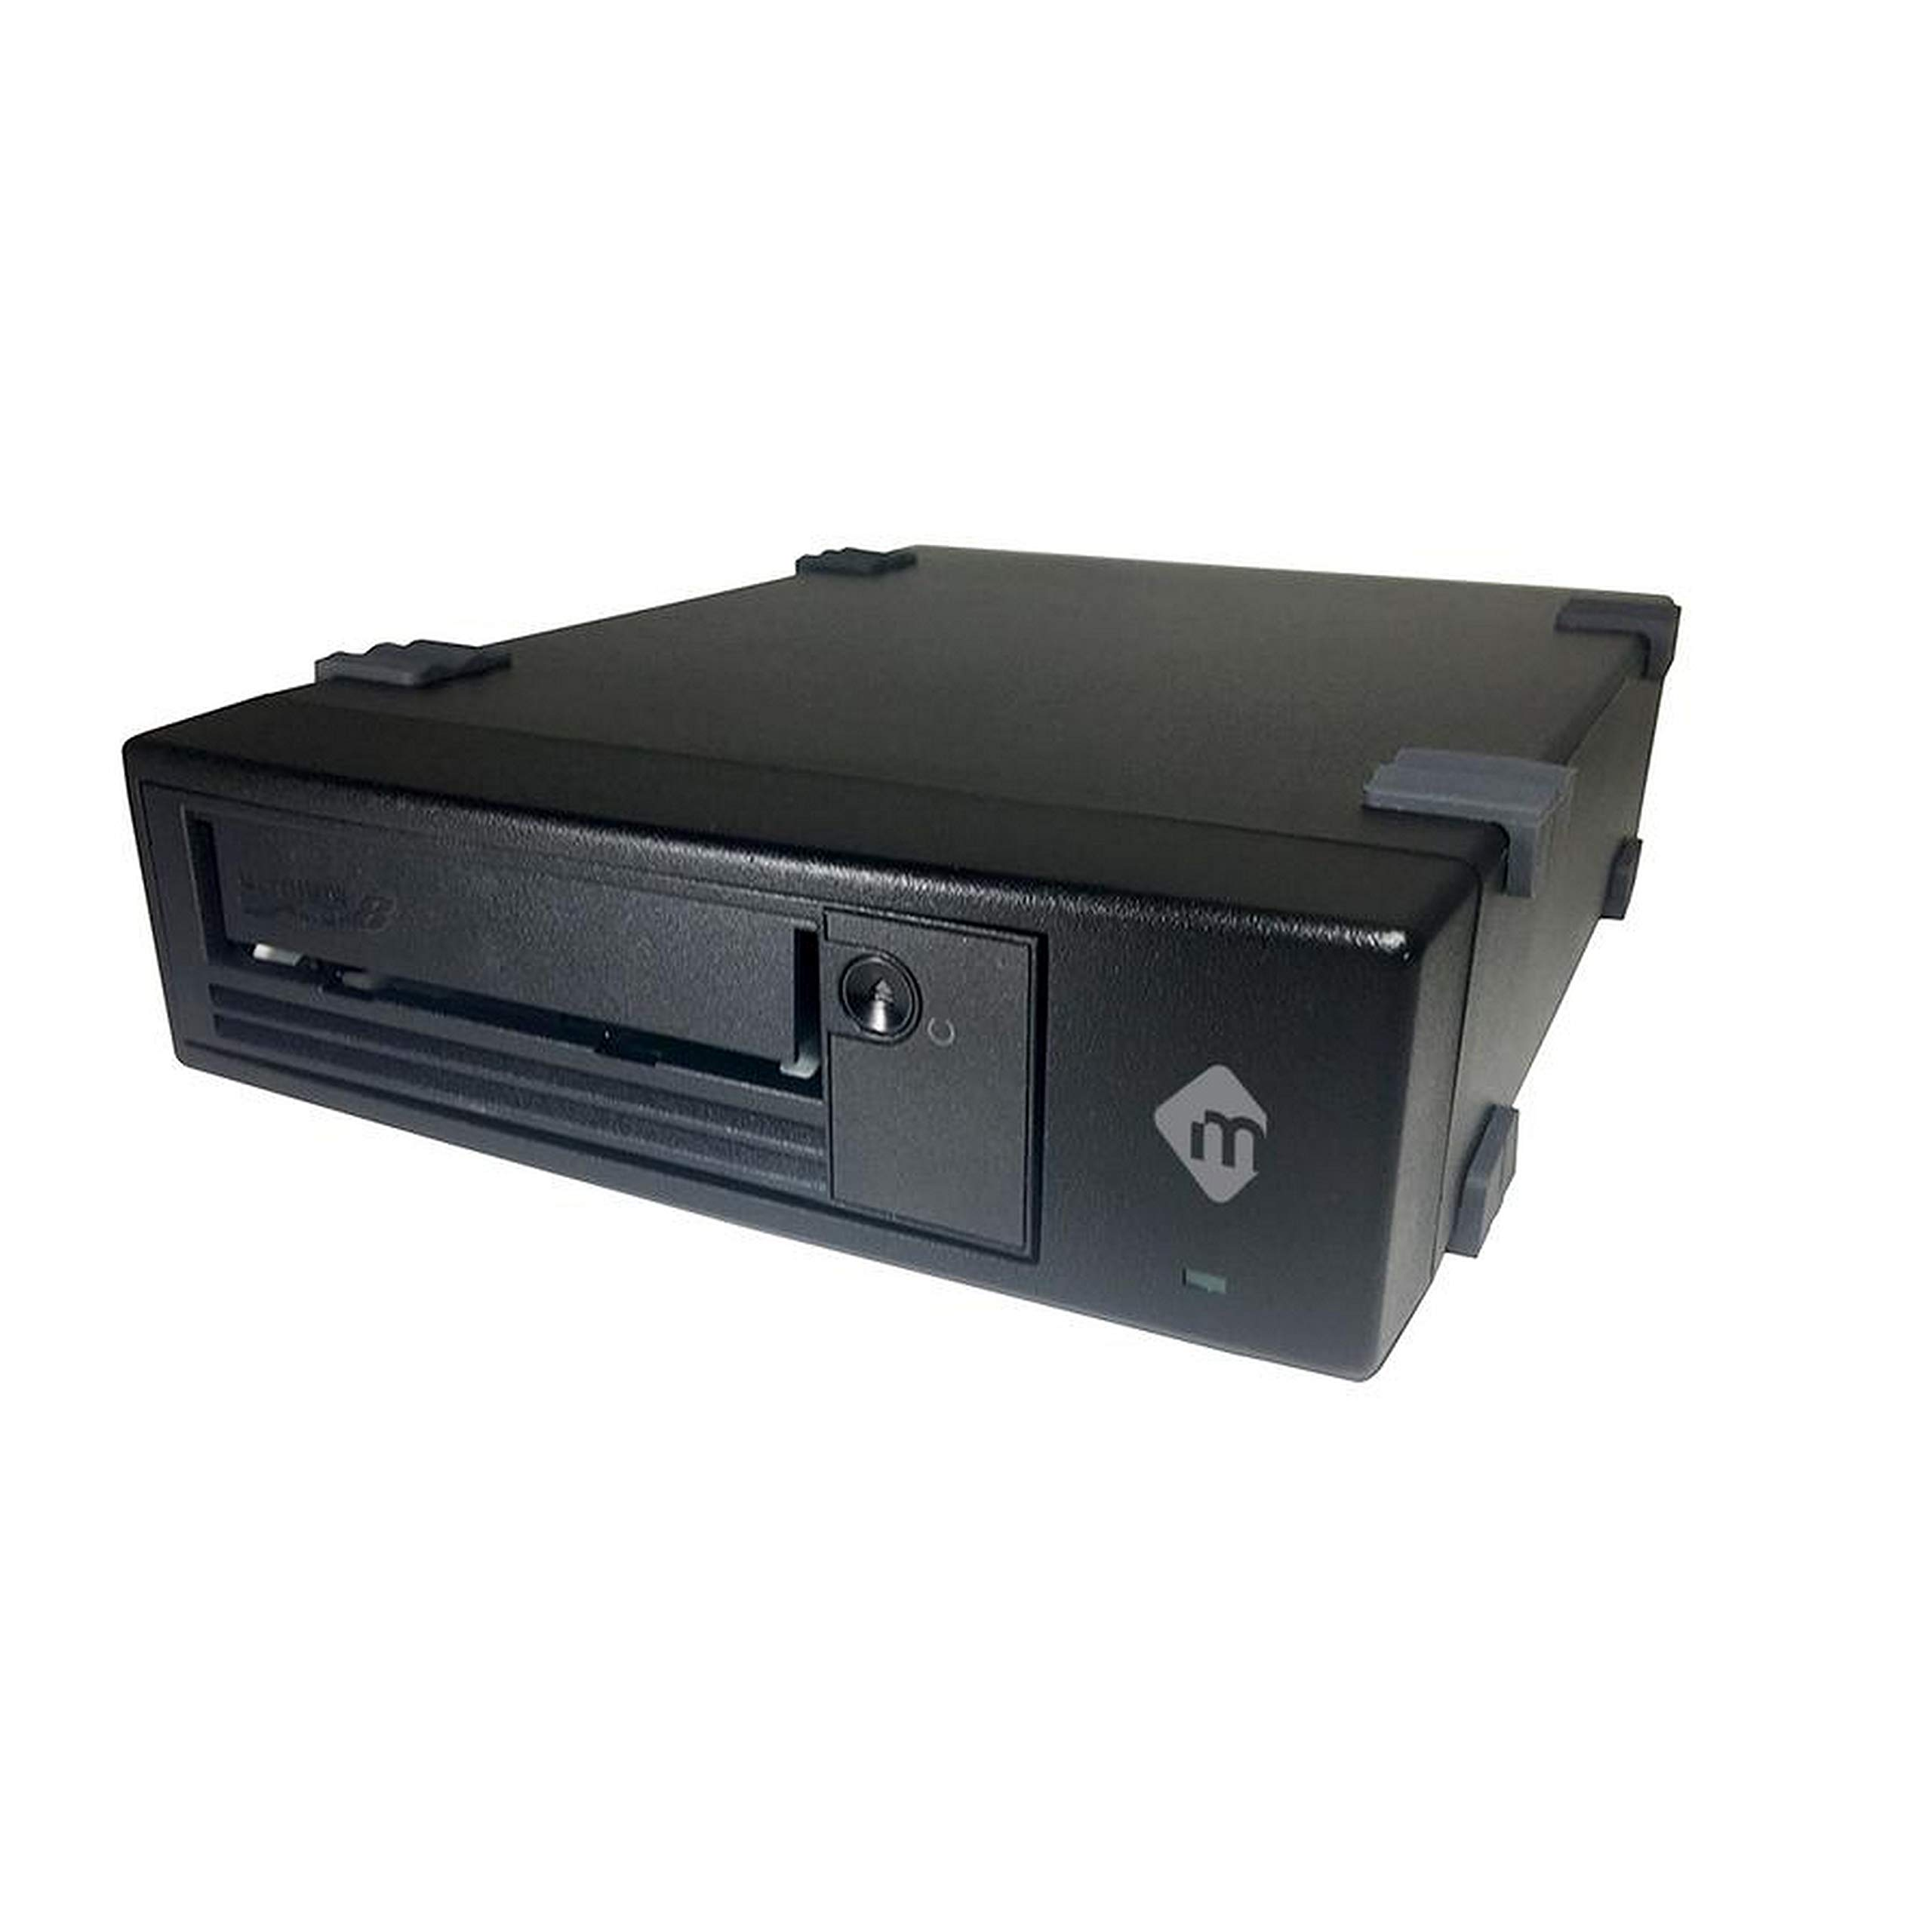 mLogic Desktop SAS LTO-8 Tape Drive for Windows and Linux with SAS Host Bus Adapter